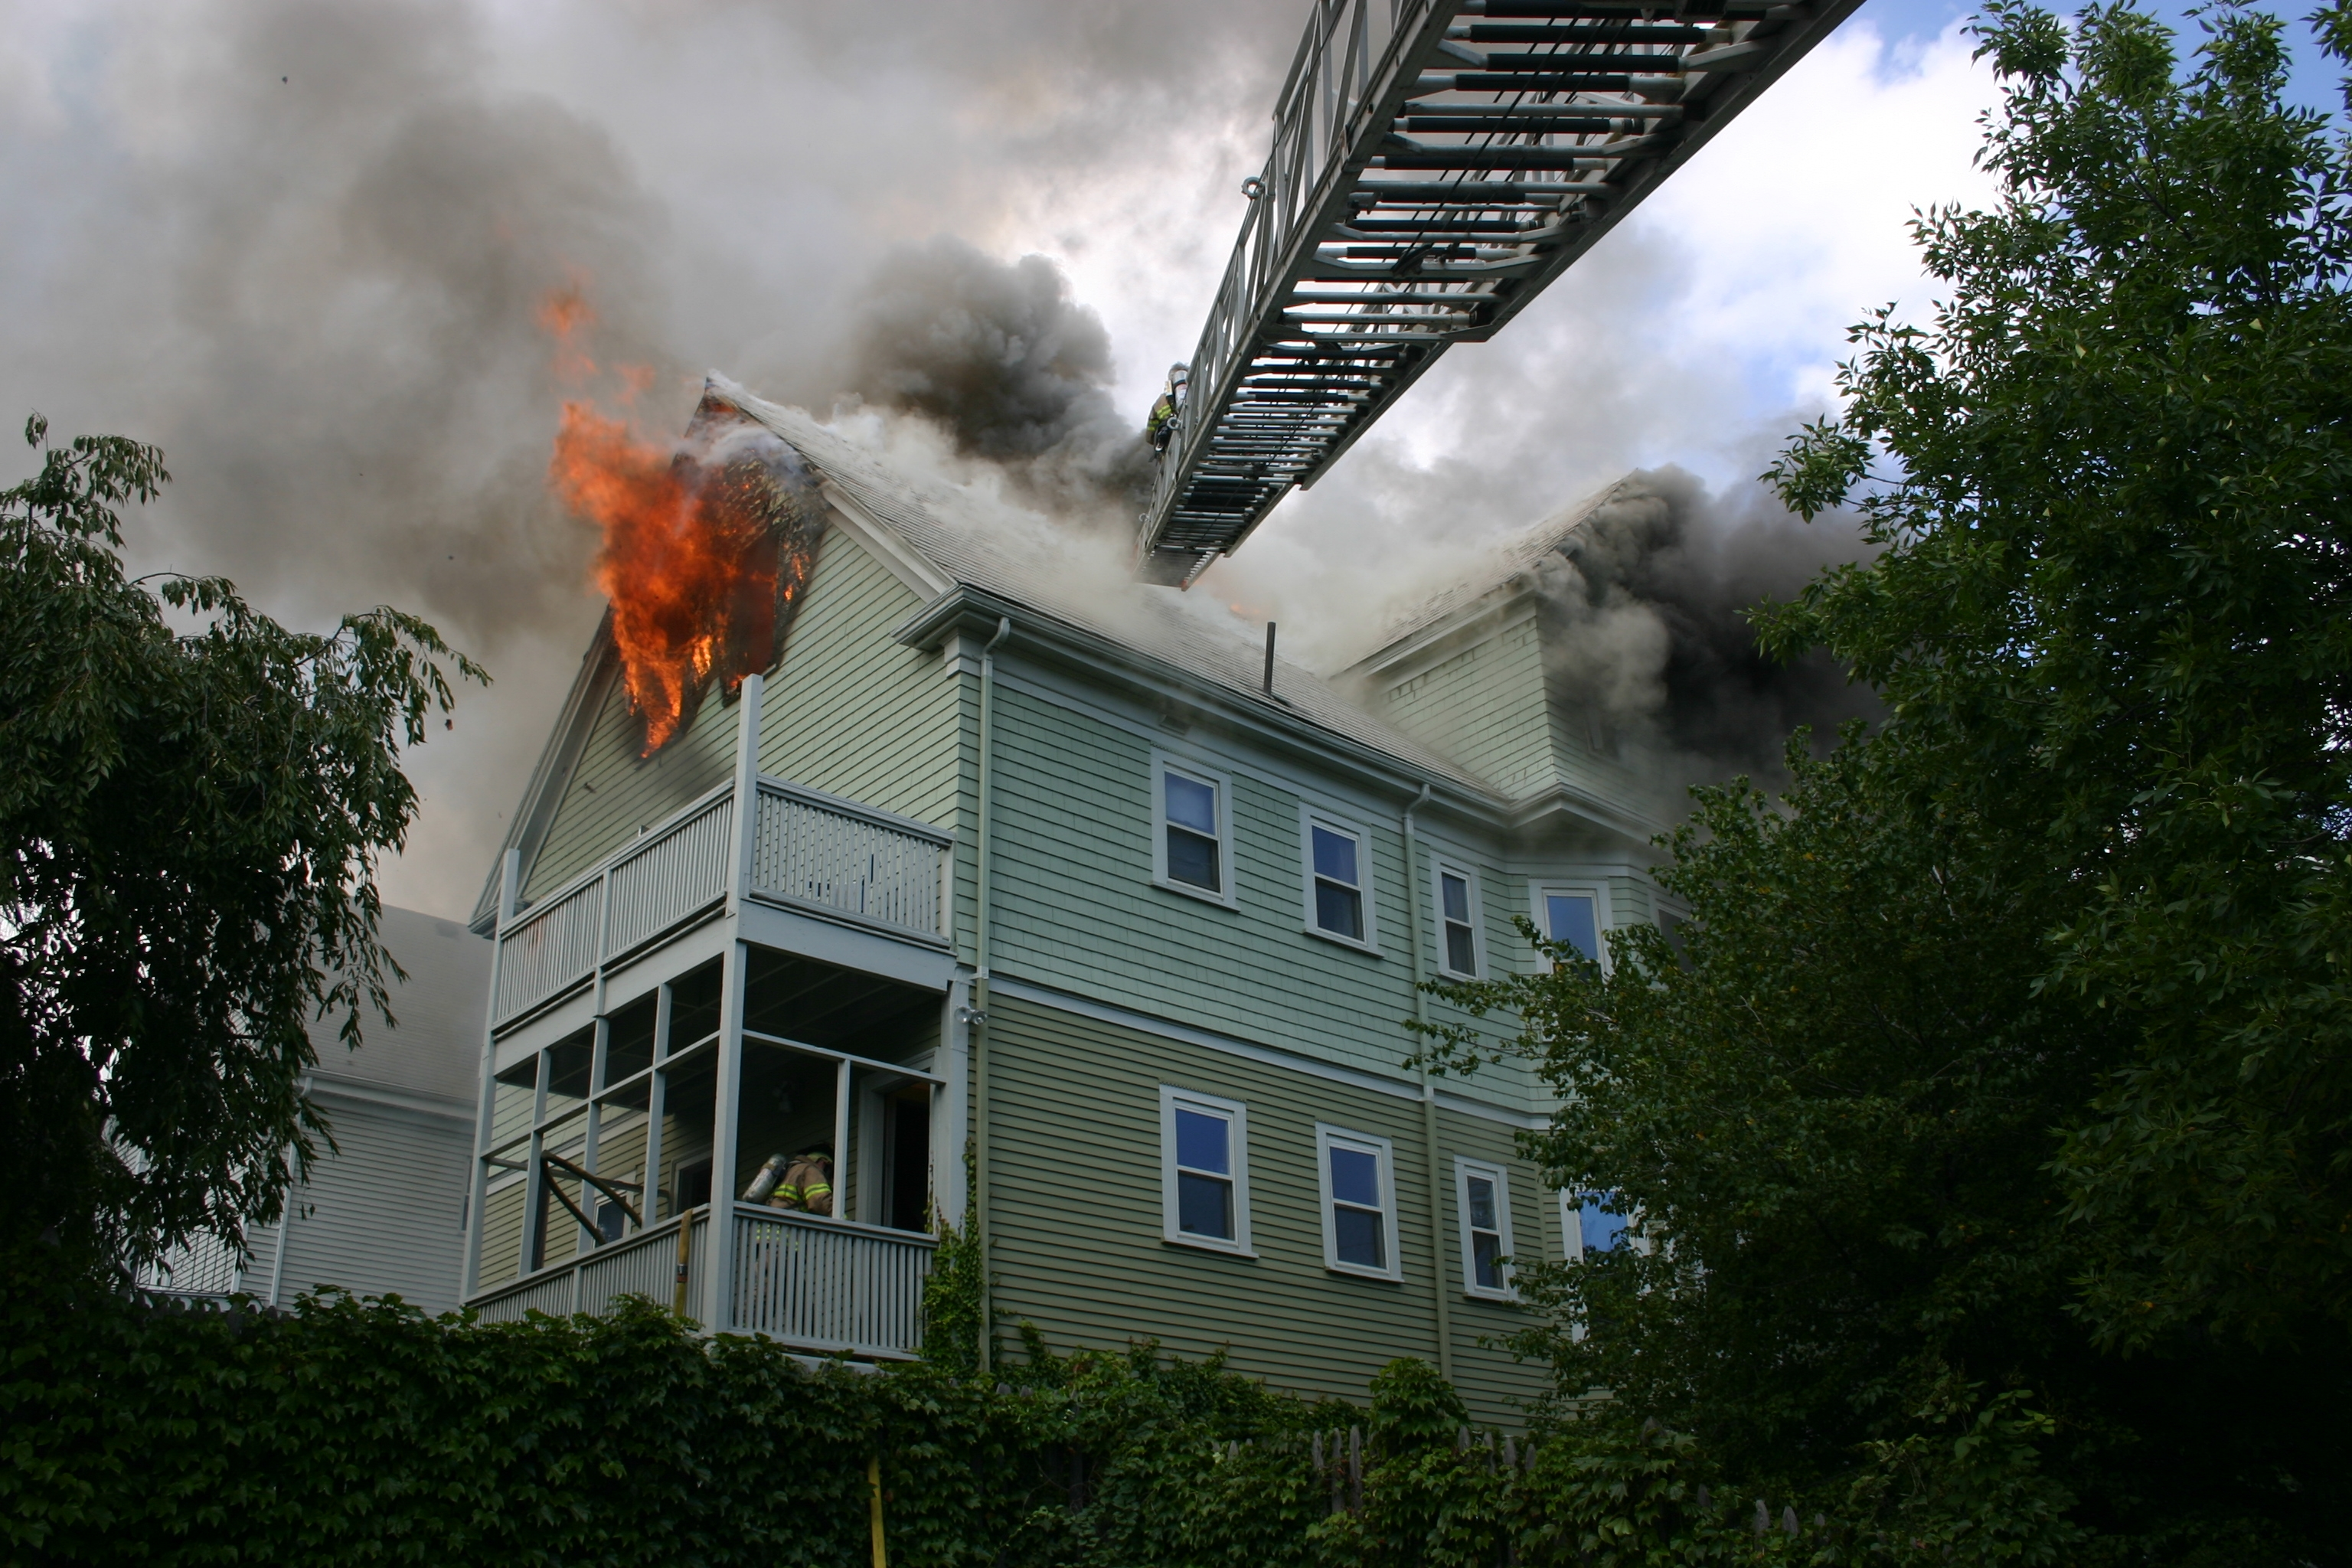 A Massachusetts house fire resulting from the use of highly flammable floor finishing products. Photo by Dean Razzaboni.